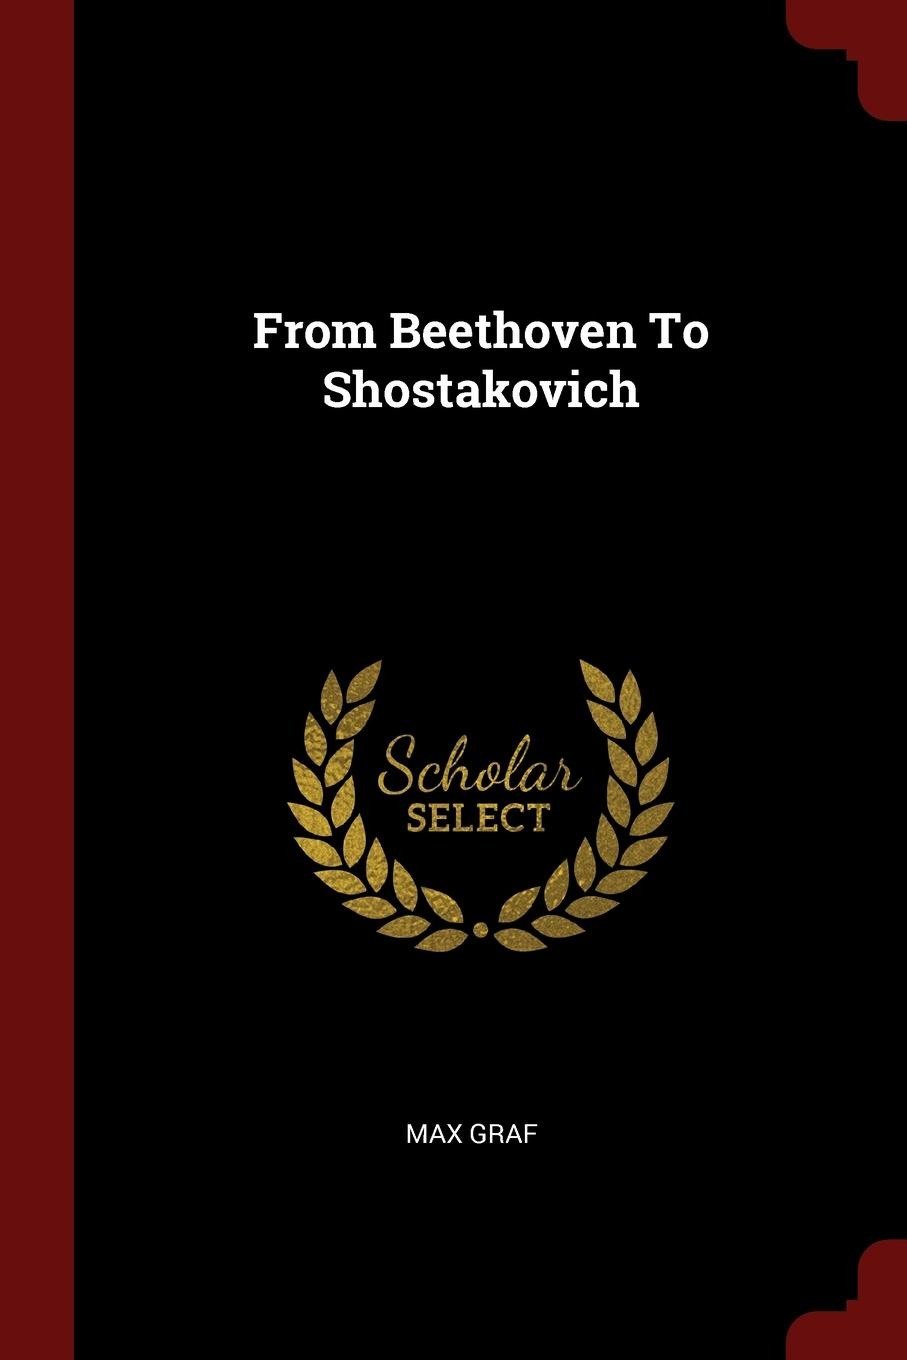 From Beethoven To Shostakovich